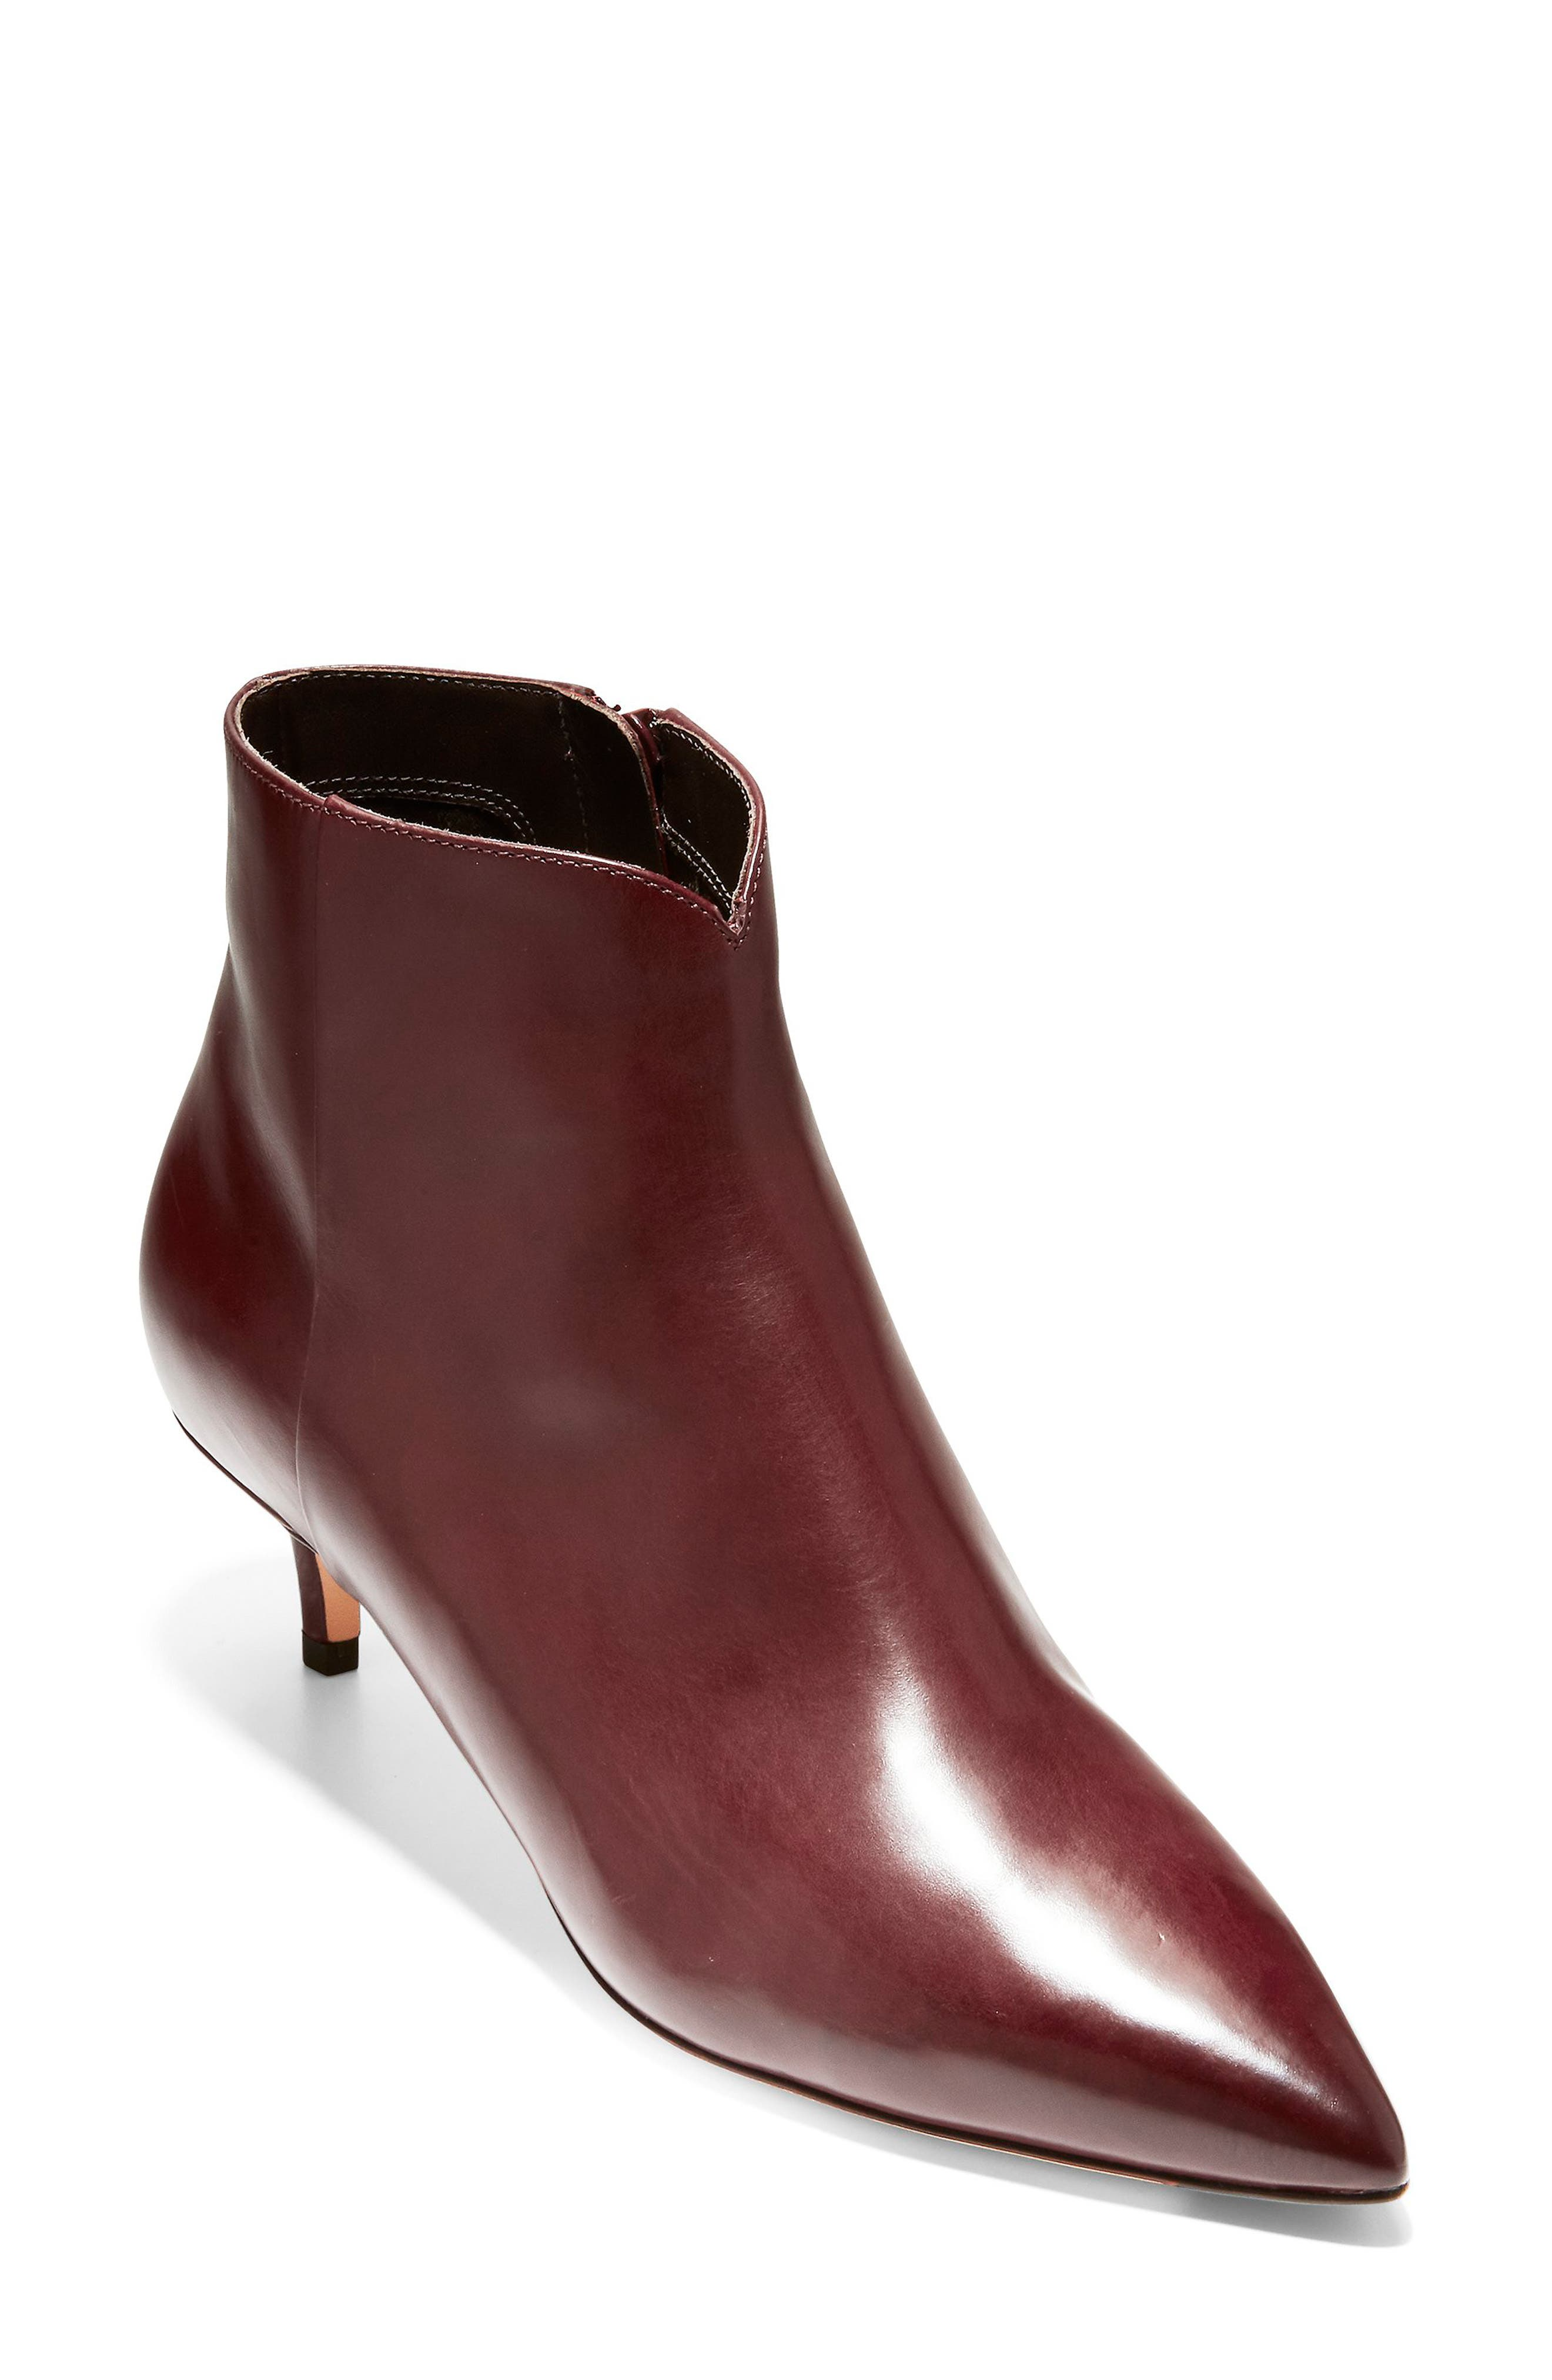 Vesta Bootie,                             Main thumbnail 1, color,                             CORDOVAN LEATHER